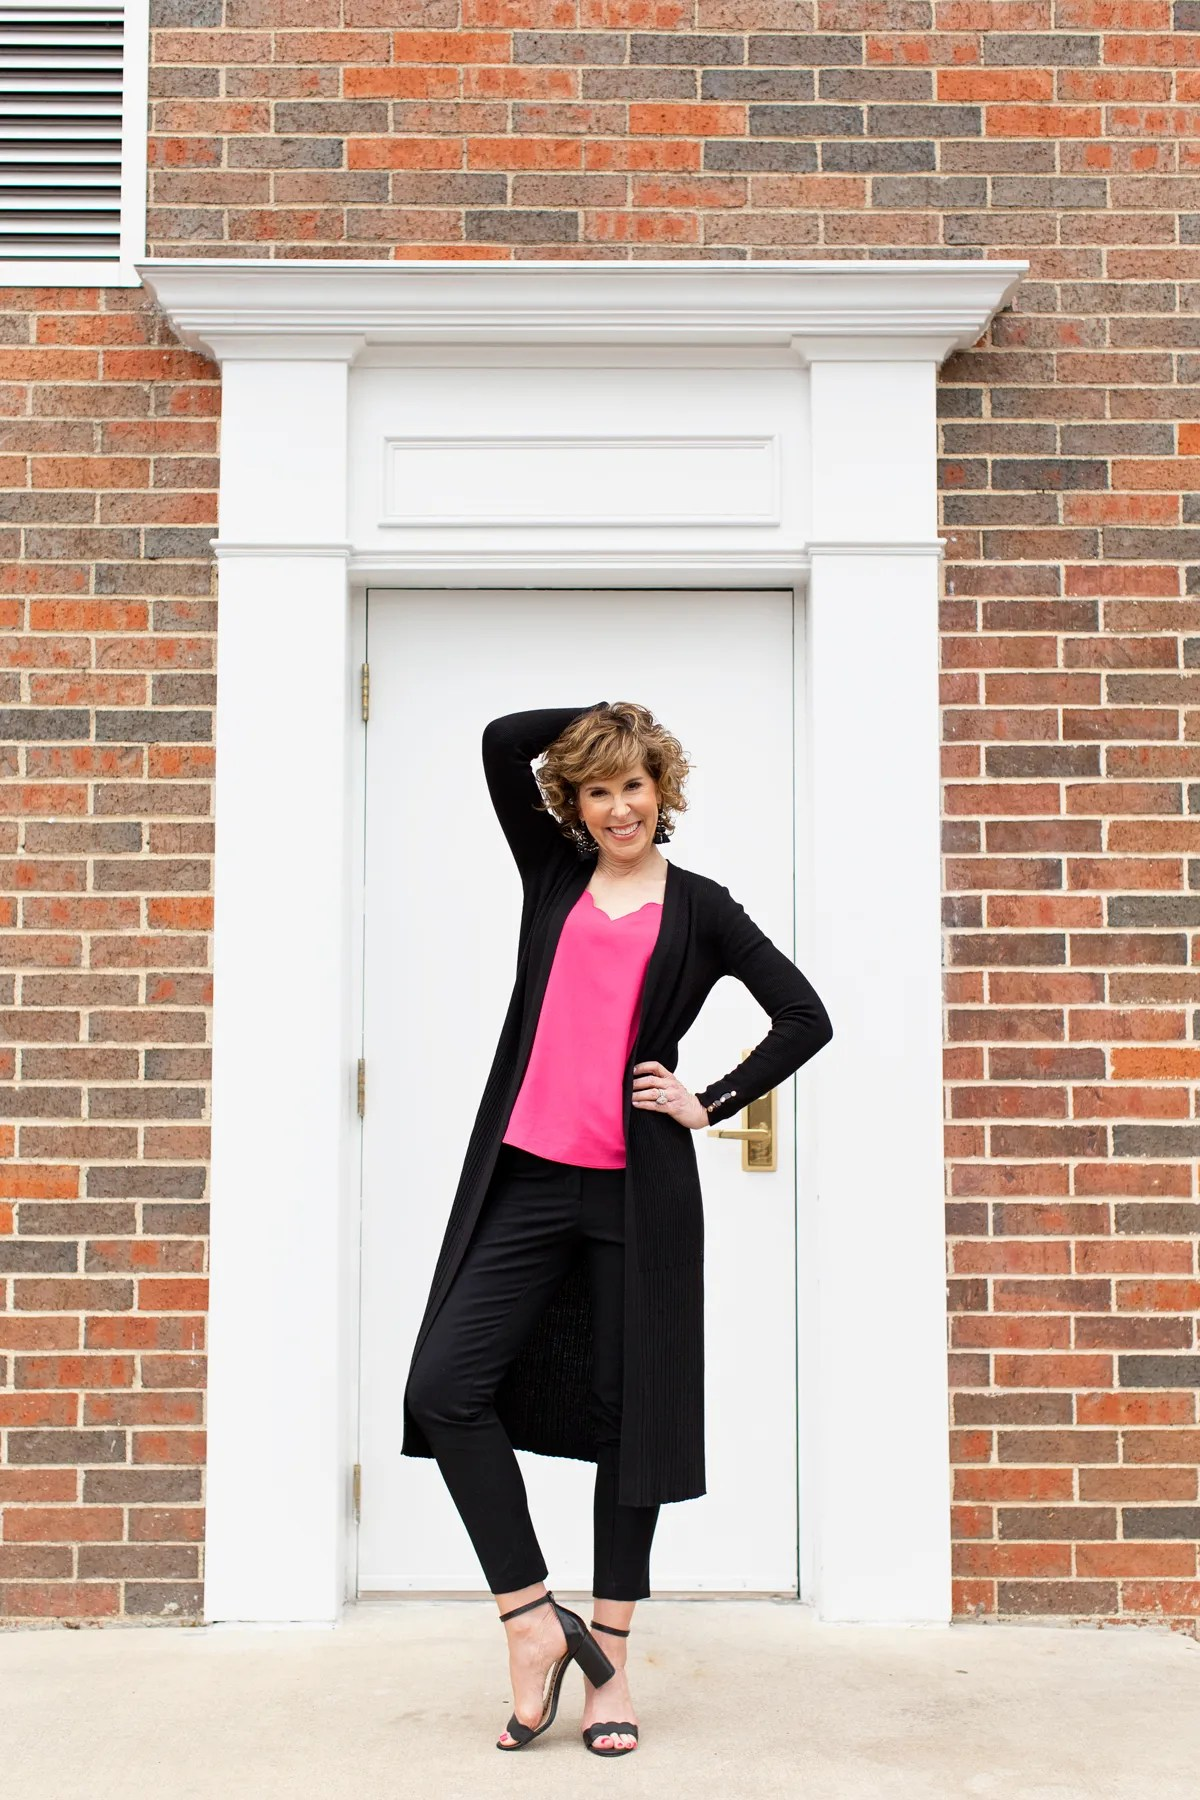 woman standing in front of doorway in pink top with black sweater